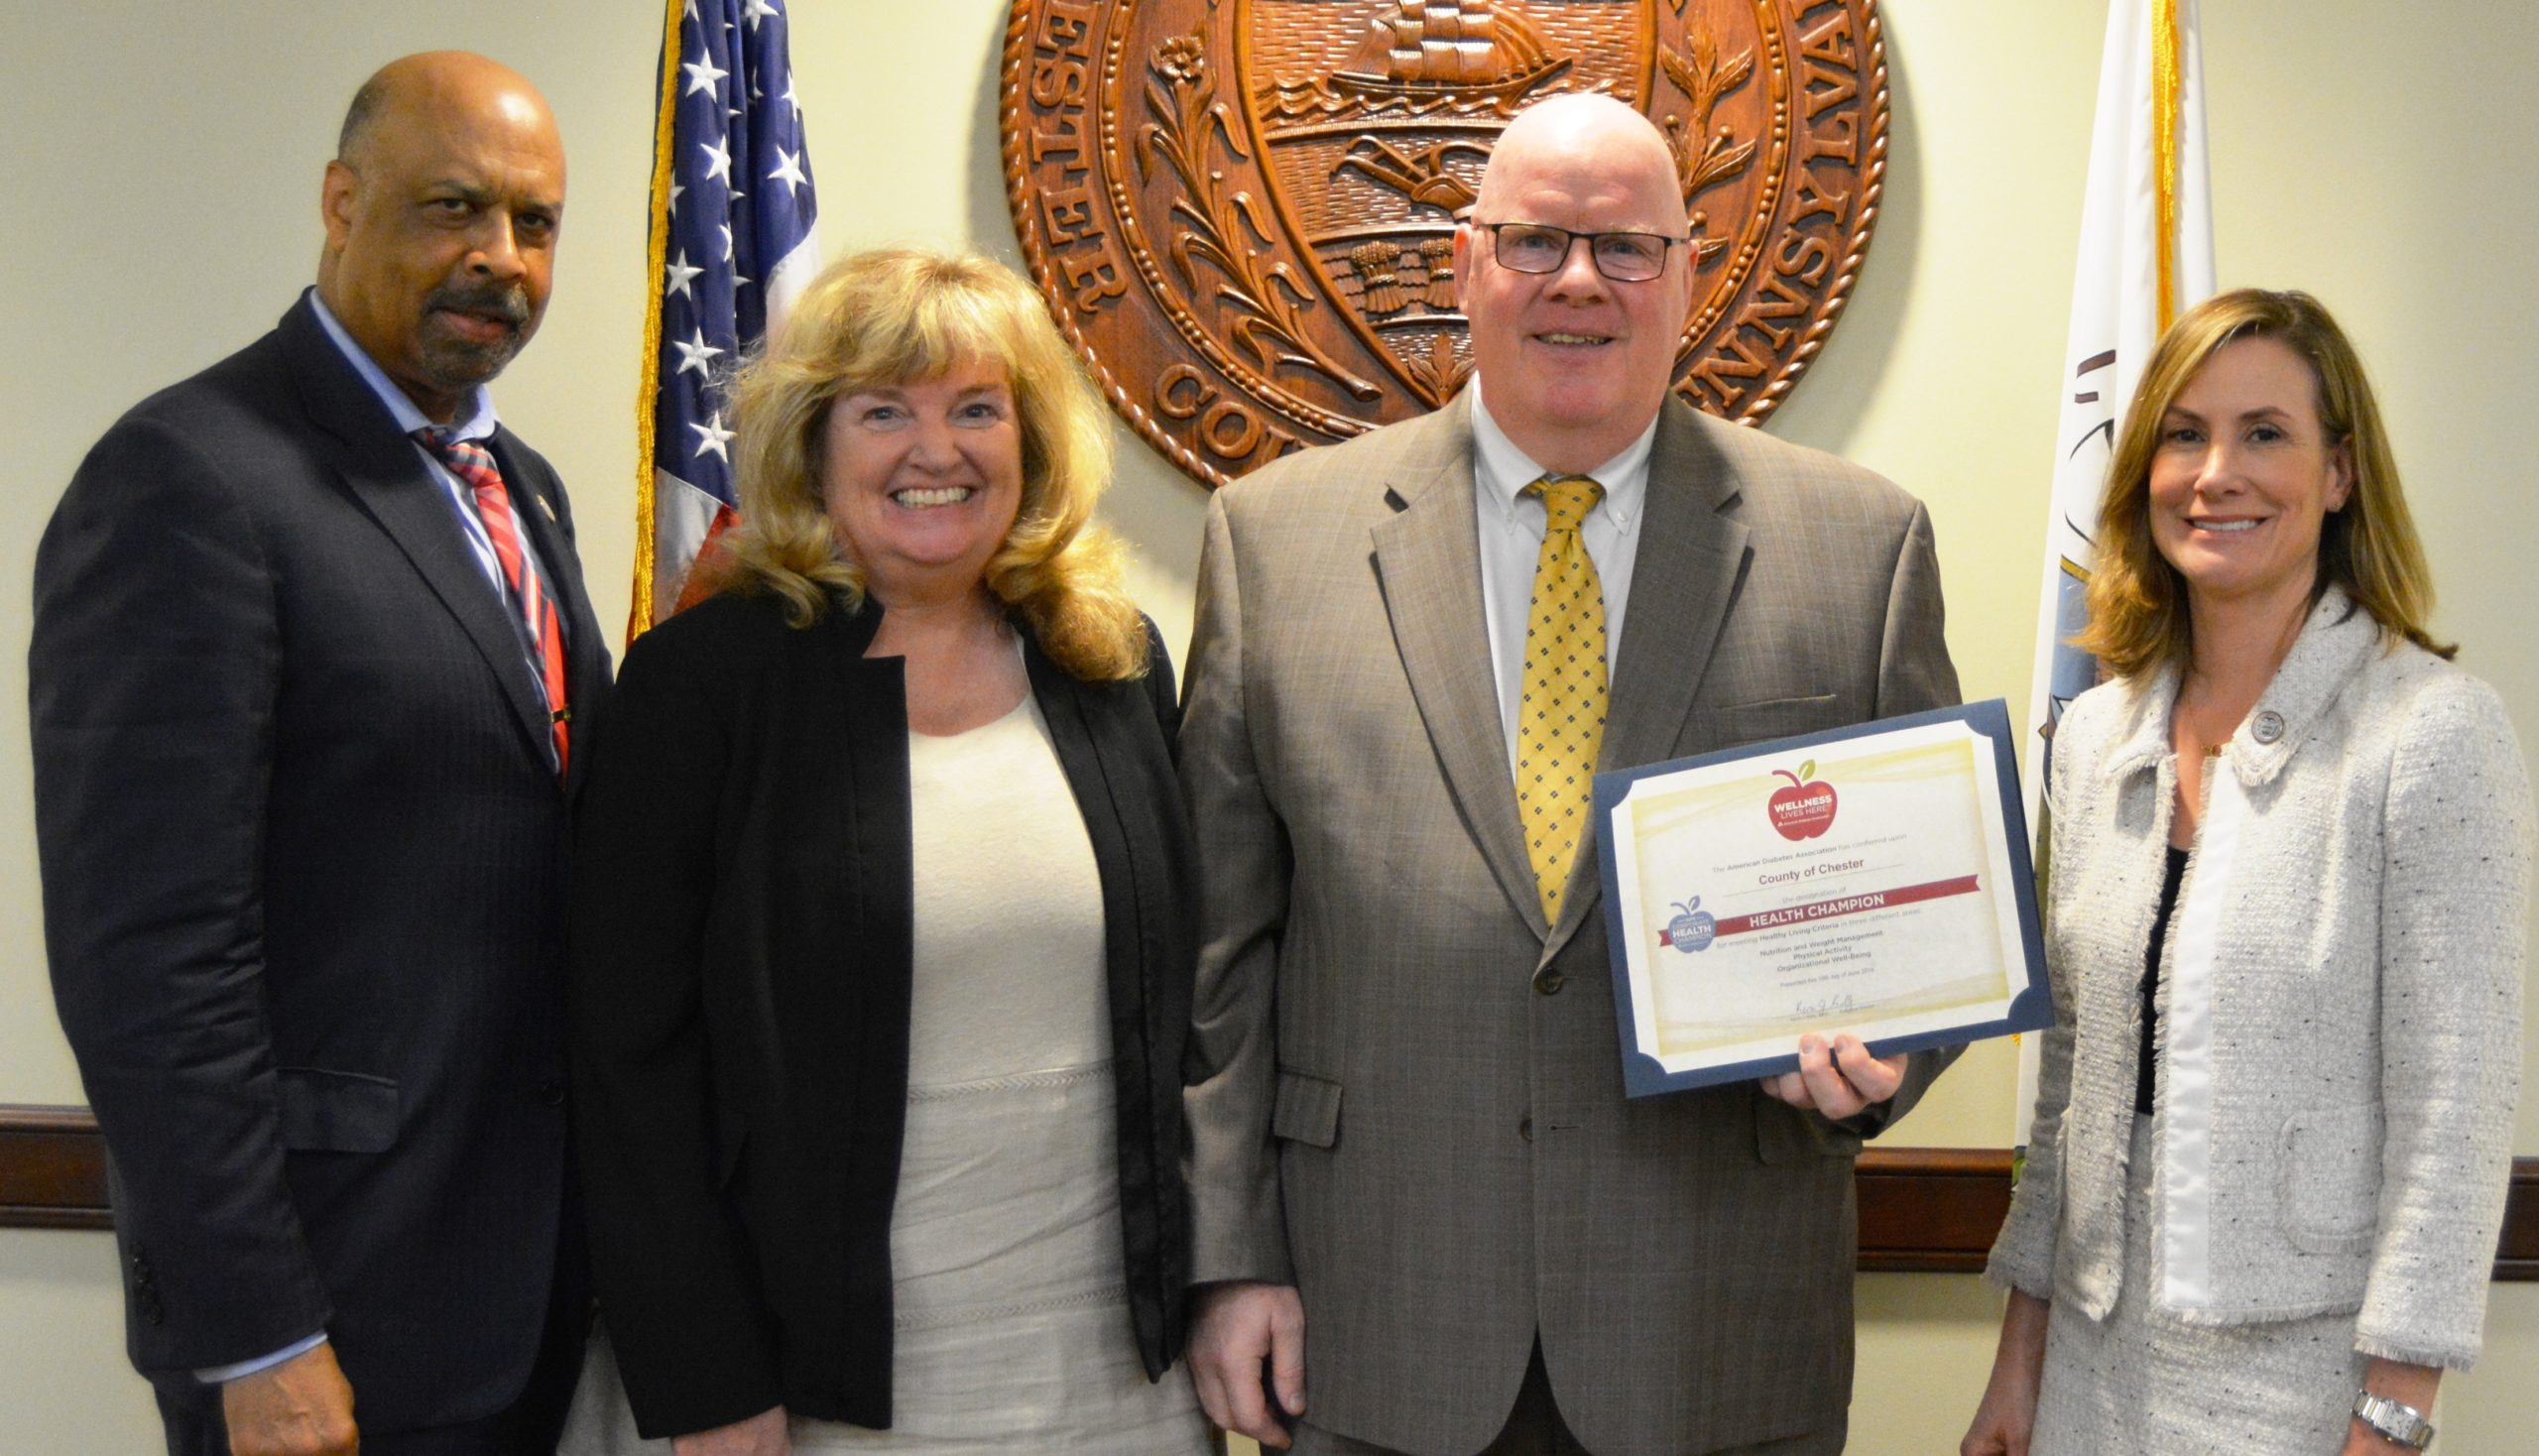 Chester County Earns Health Champion Designation by American Diabetes Association